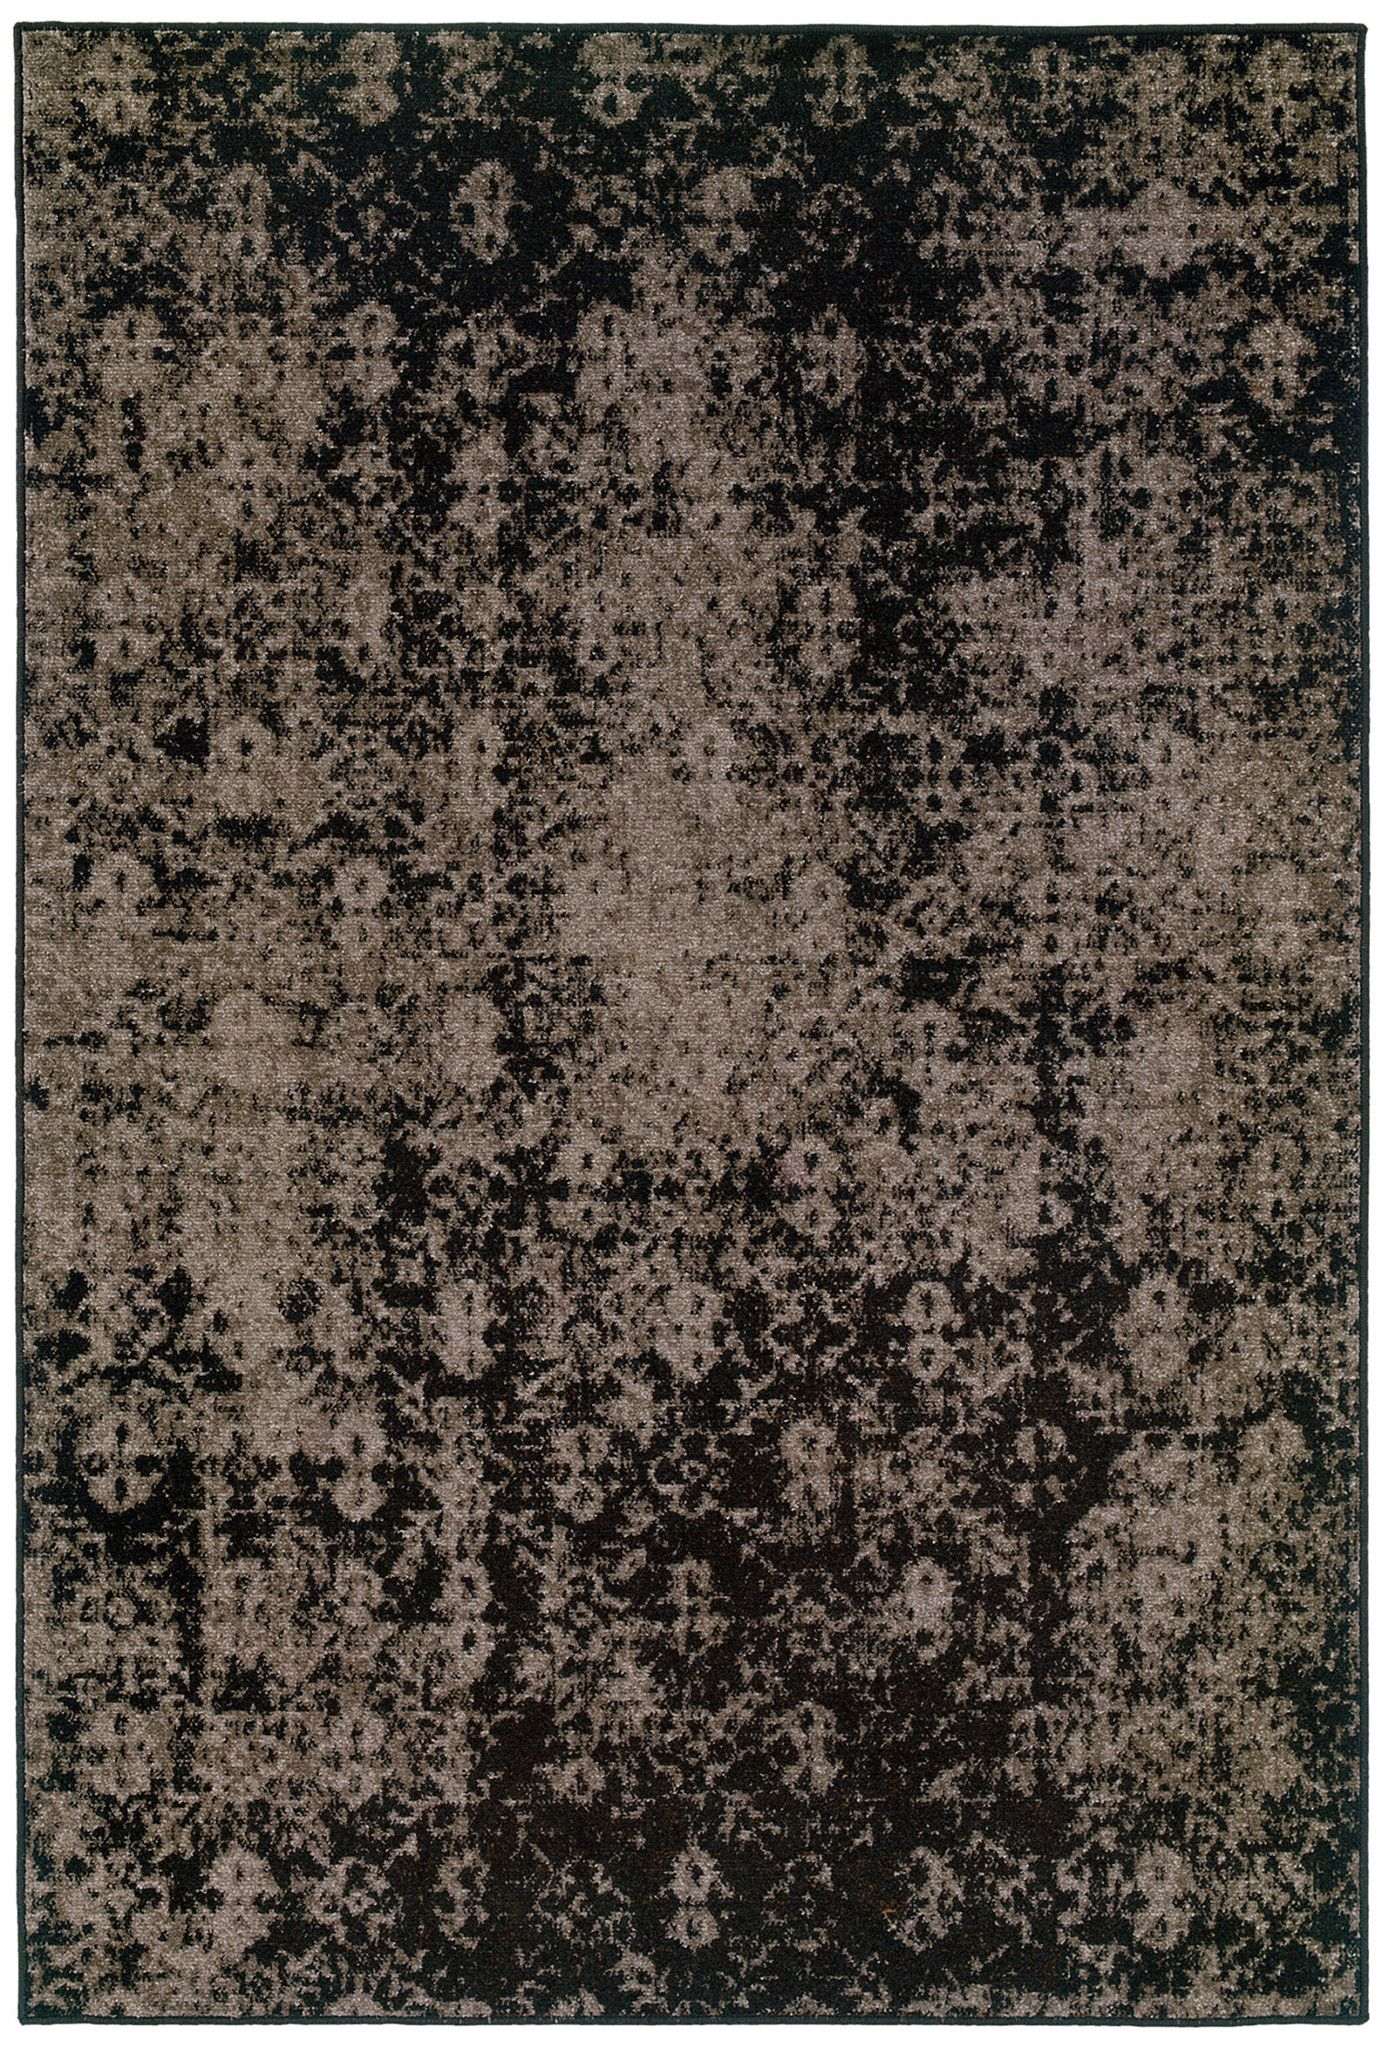 Black And Gray Worn Overdyed Style Rug Area Rugs Black Rug Grey Rugs